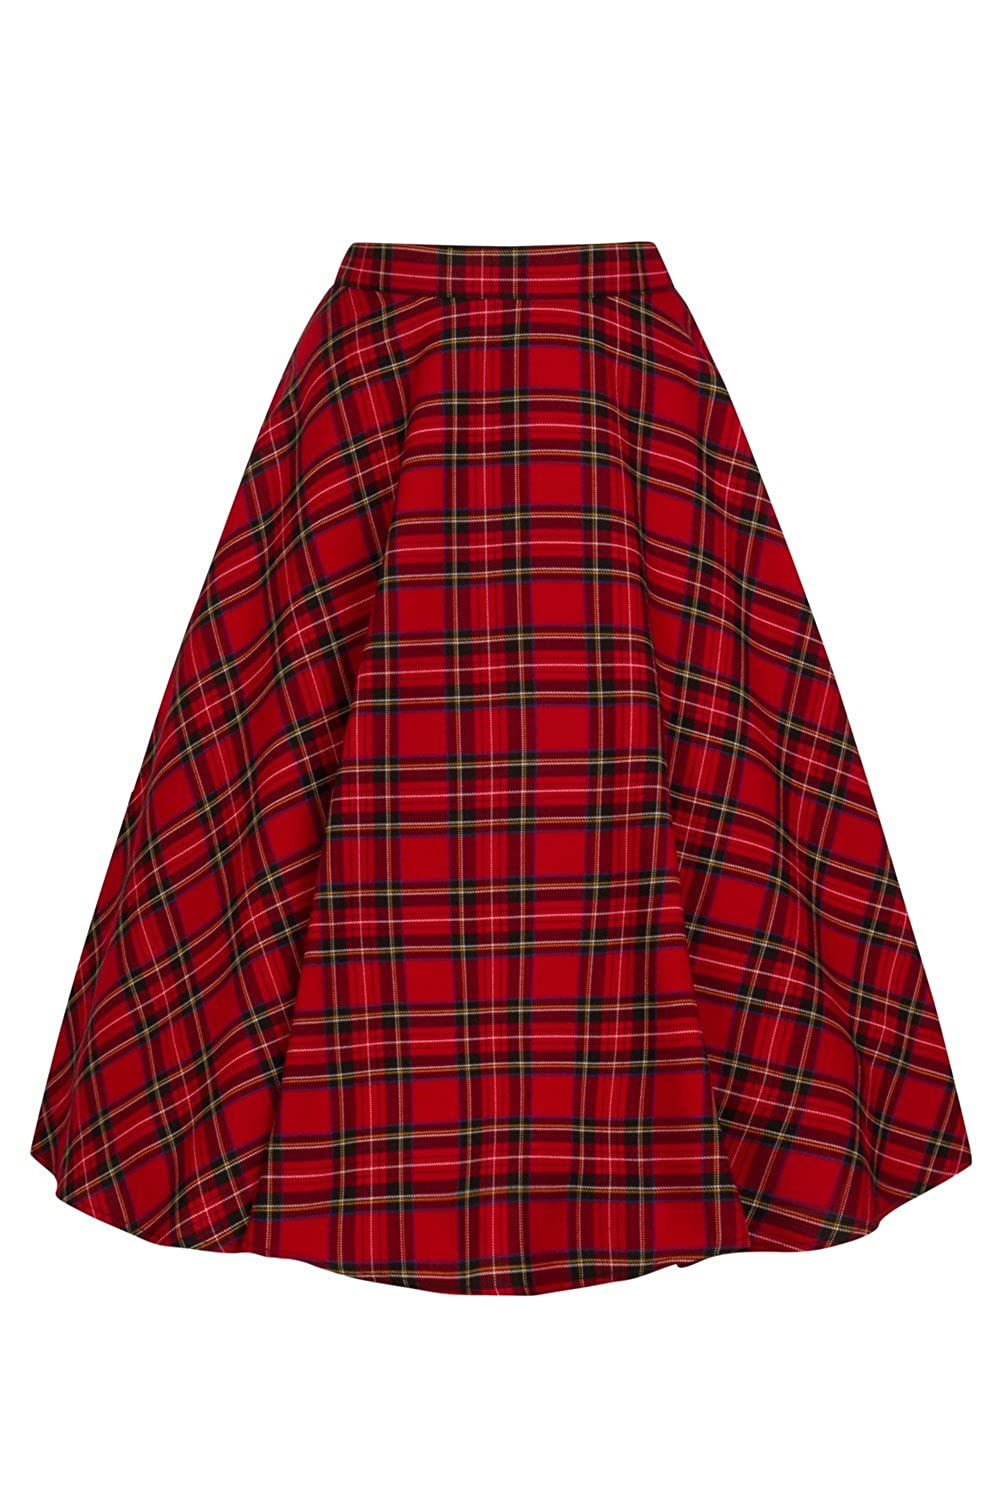 1950s Swing Skirt, Poodle Skirt, Pencil Skirts Hell Bunny Irvine Red Tartan 50s Vintage Retro Flare Swing Skirt $46.99 AT vintagedancer.com